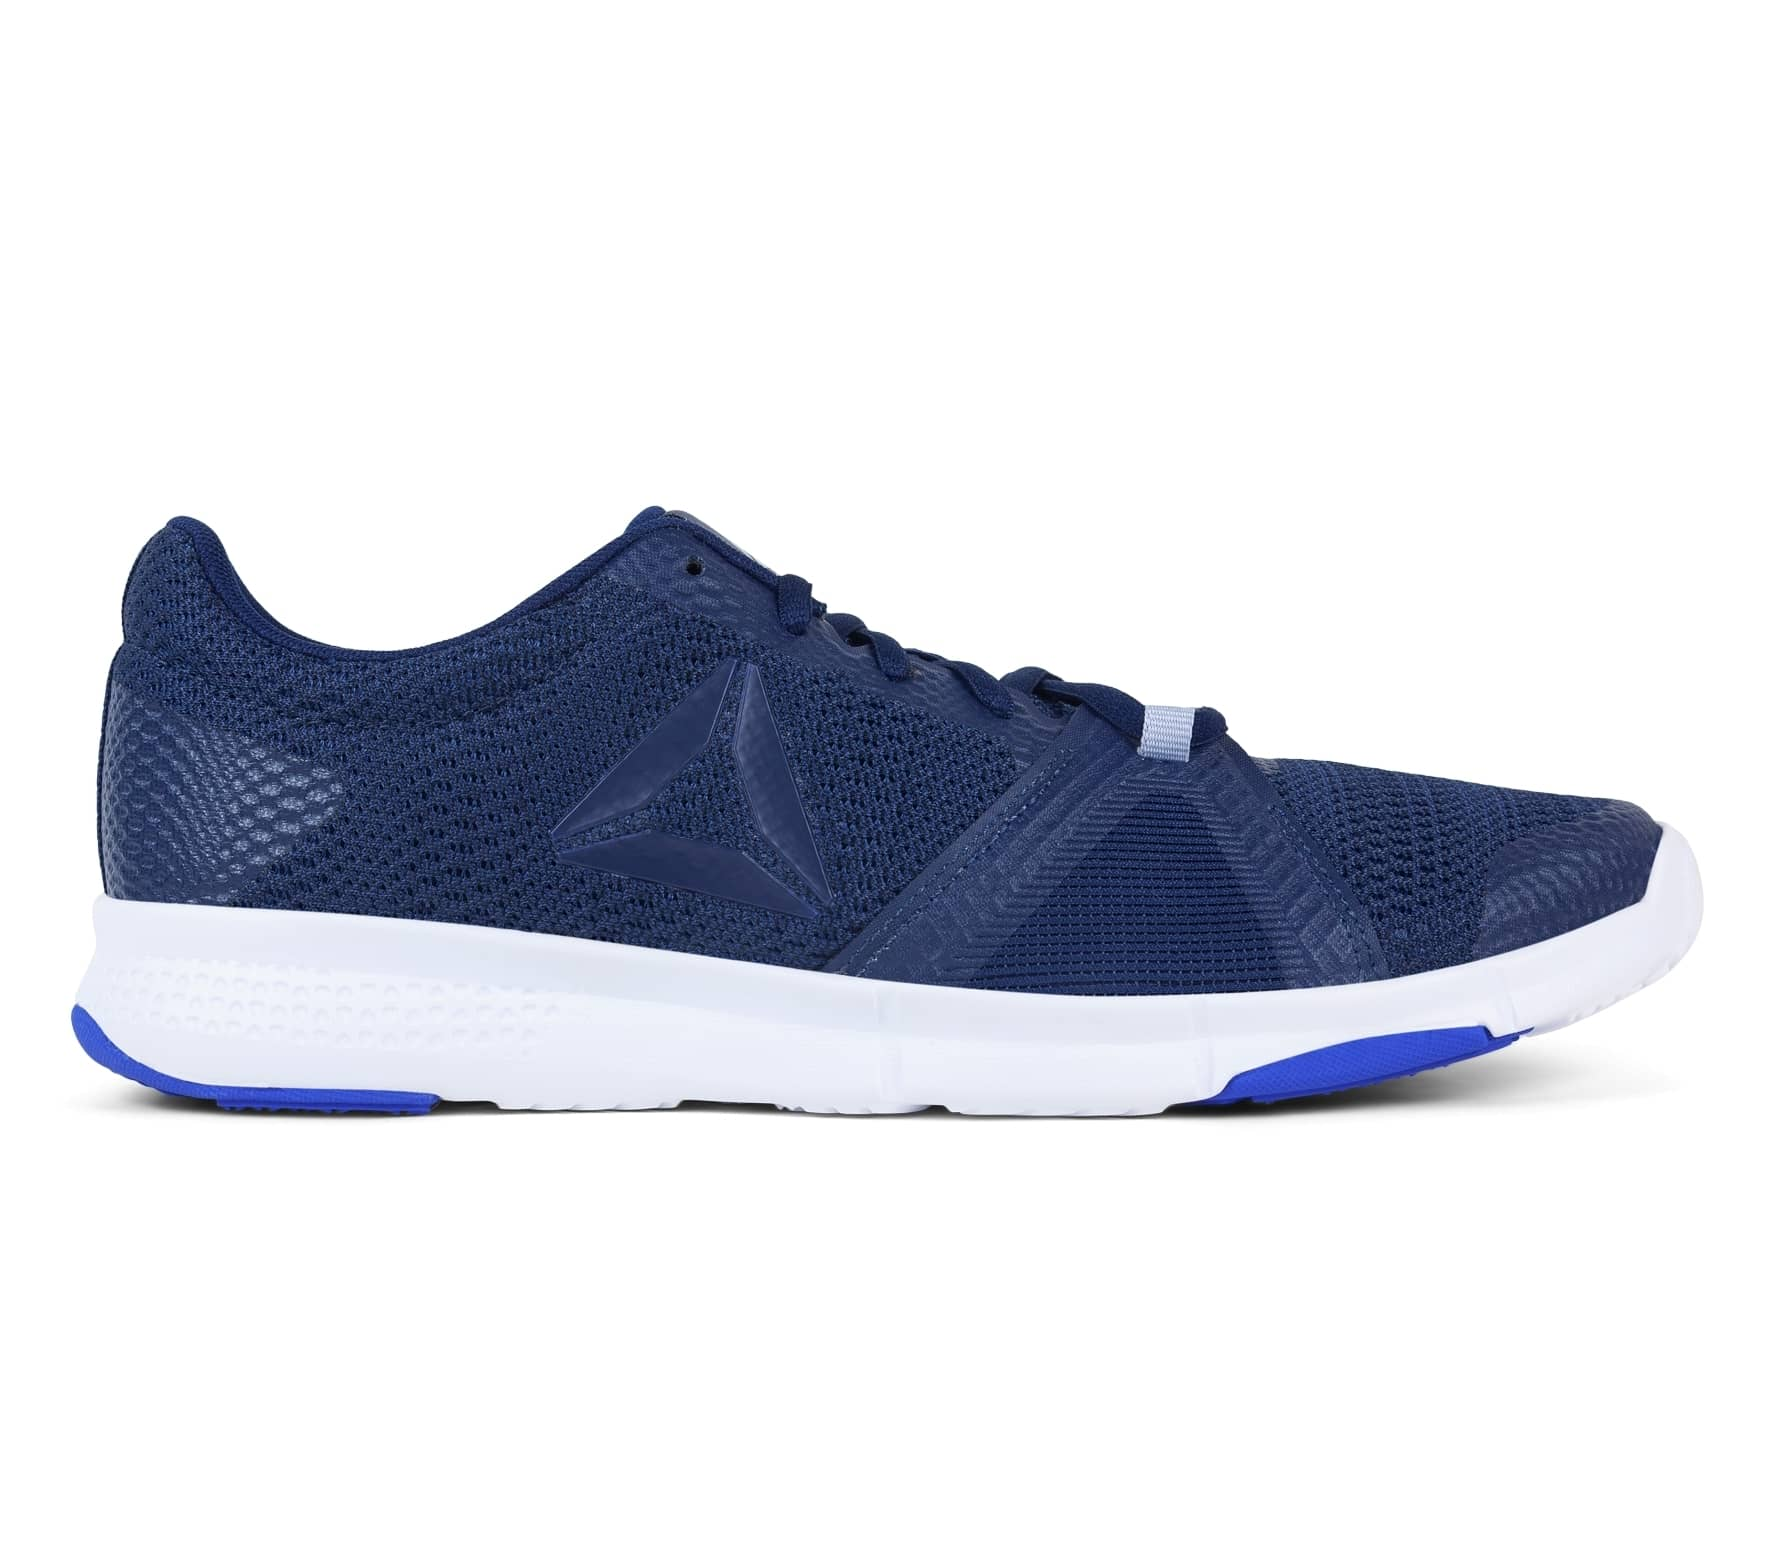 Reebok - Flexile men s training shoes (dark blue) - buy it at the ... a23c5788d